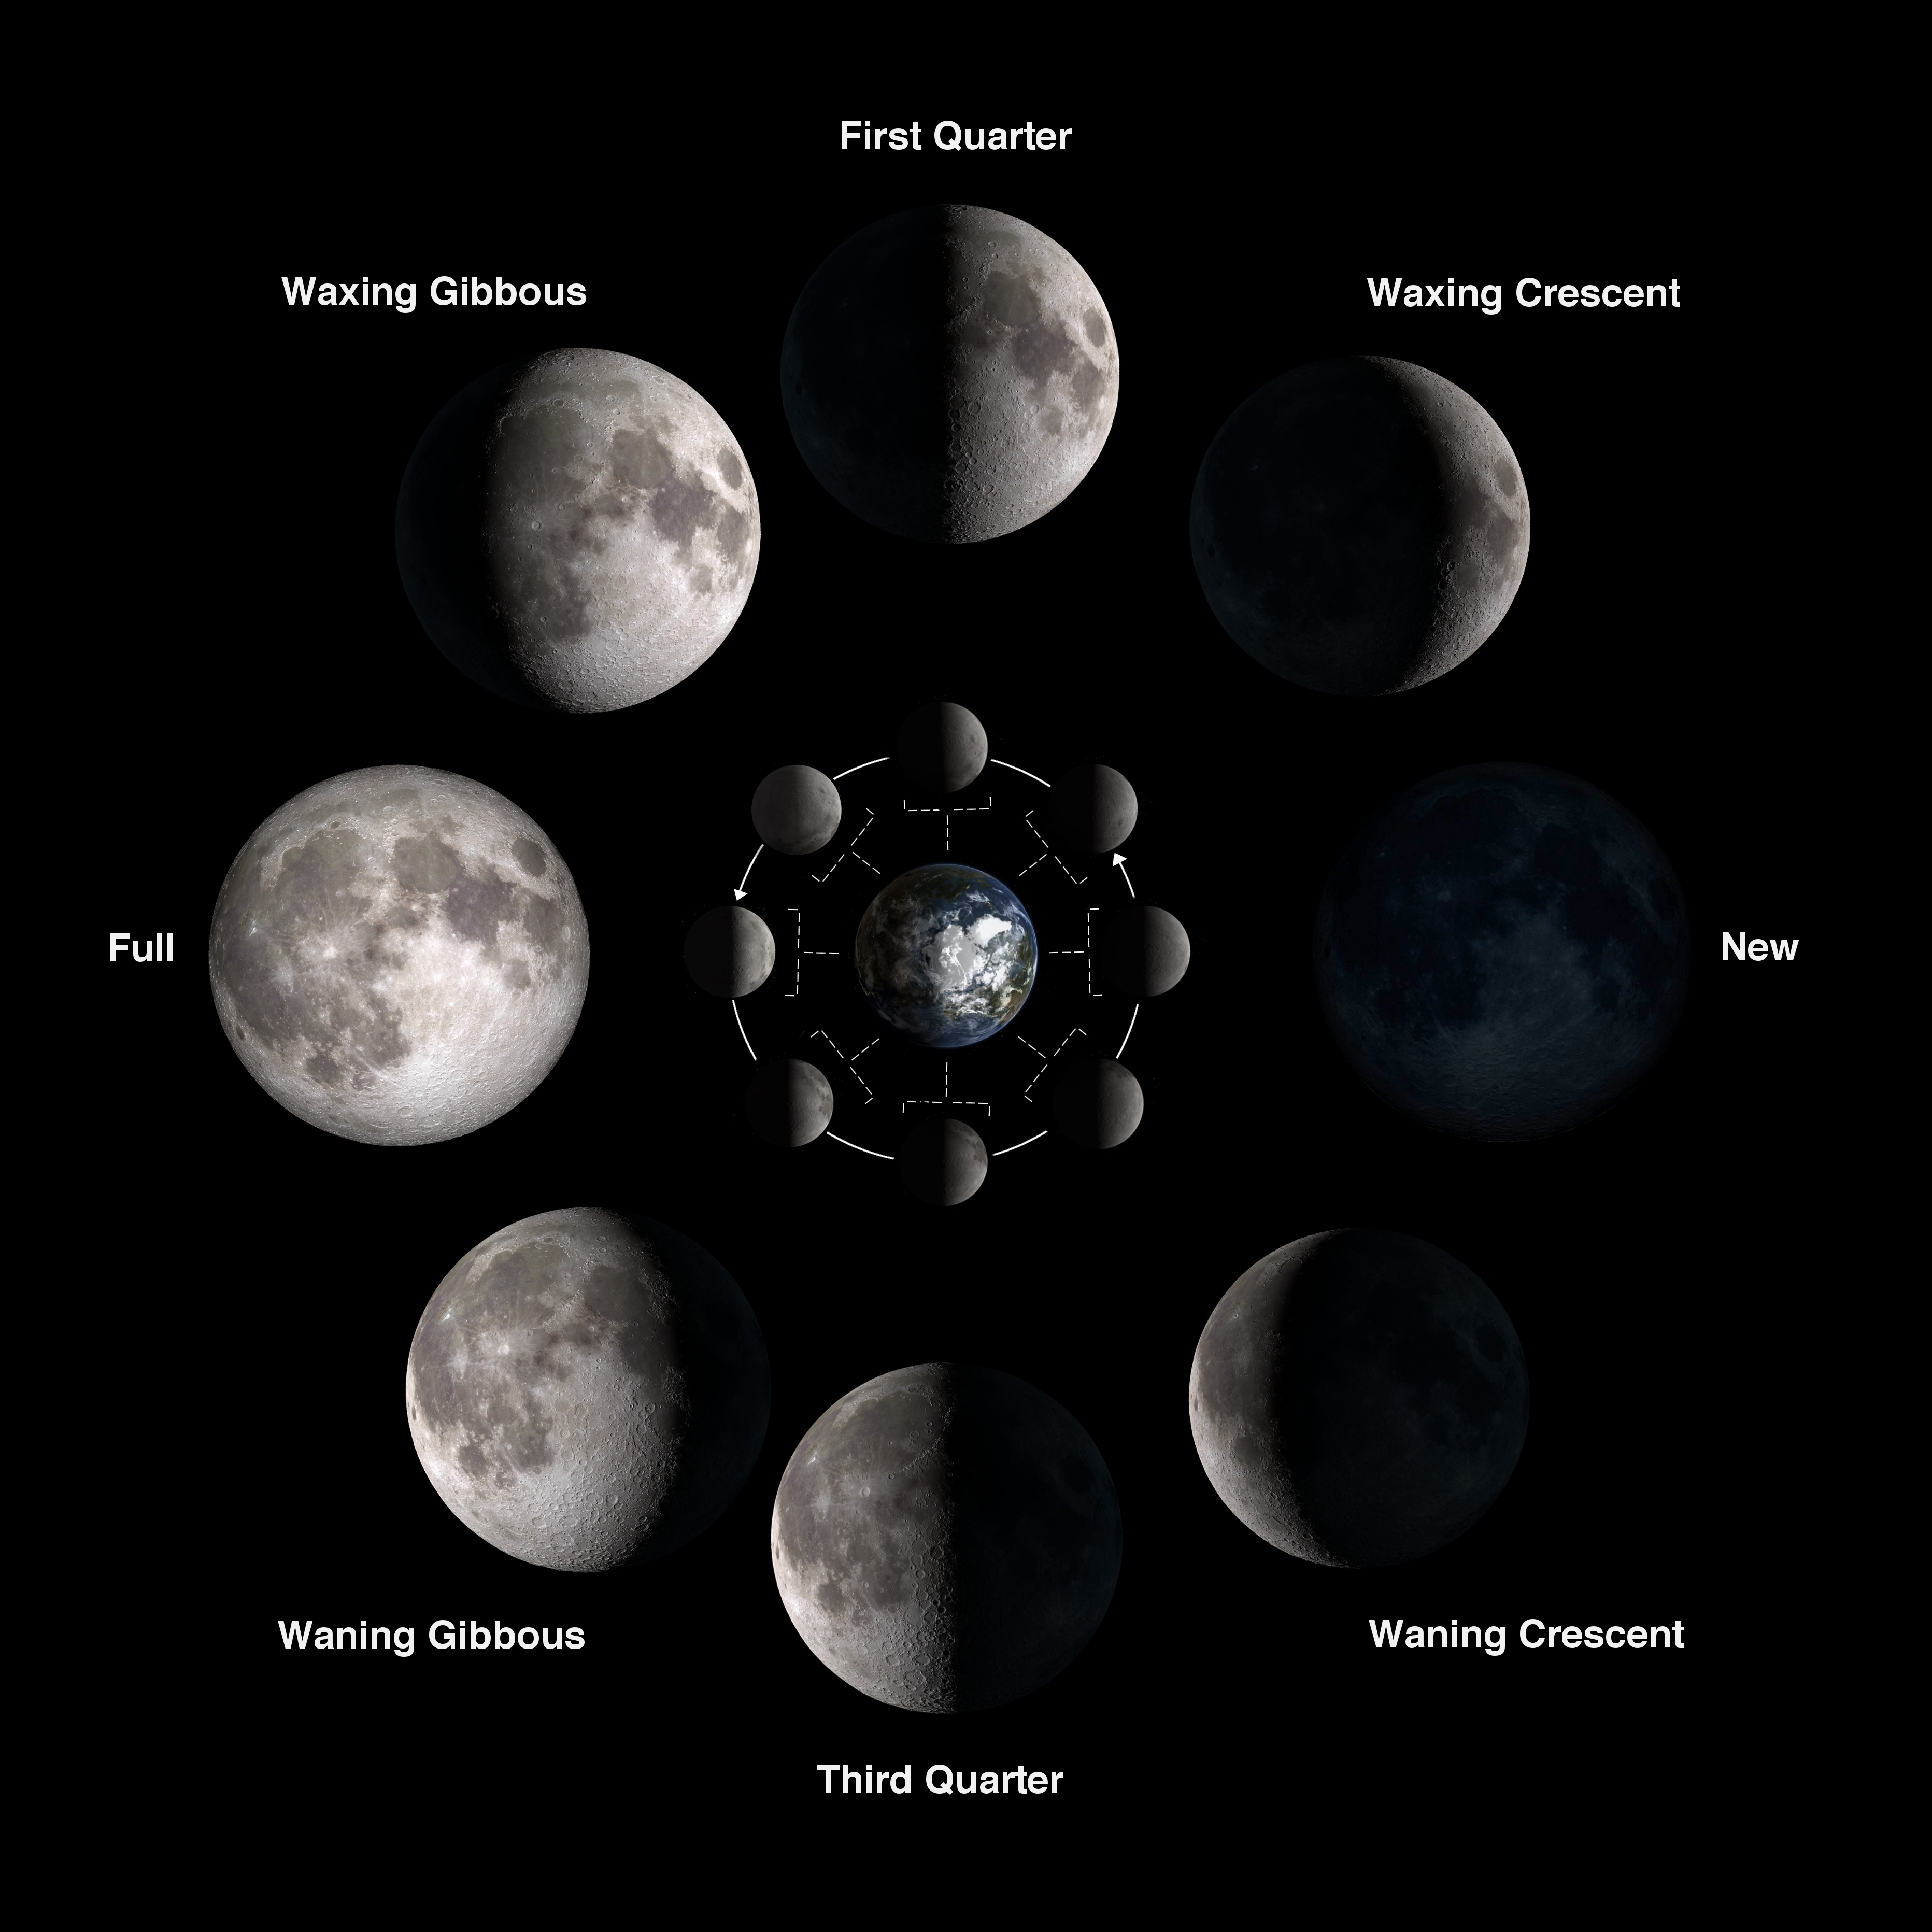 Chart showing phases of the Moon.